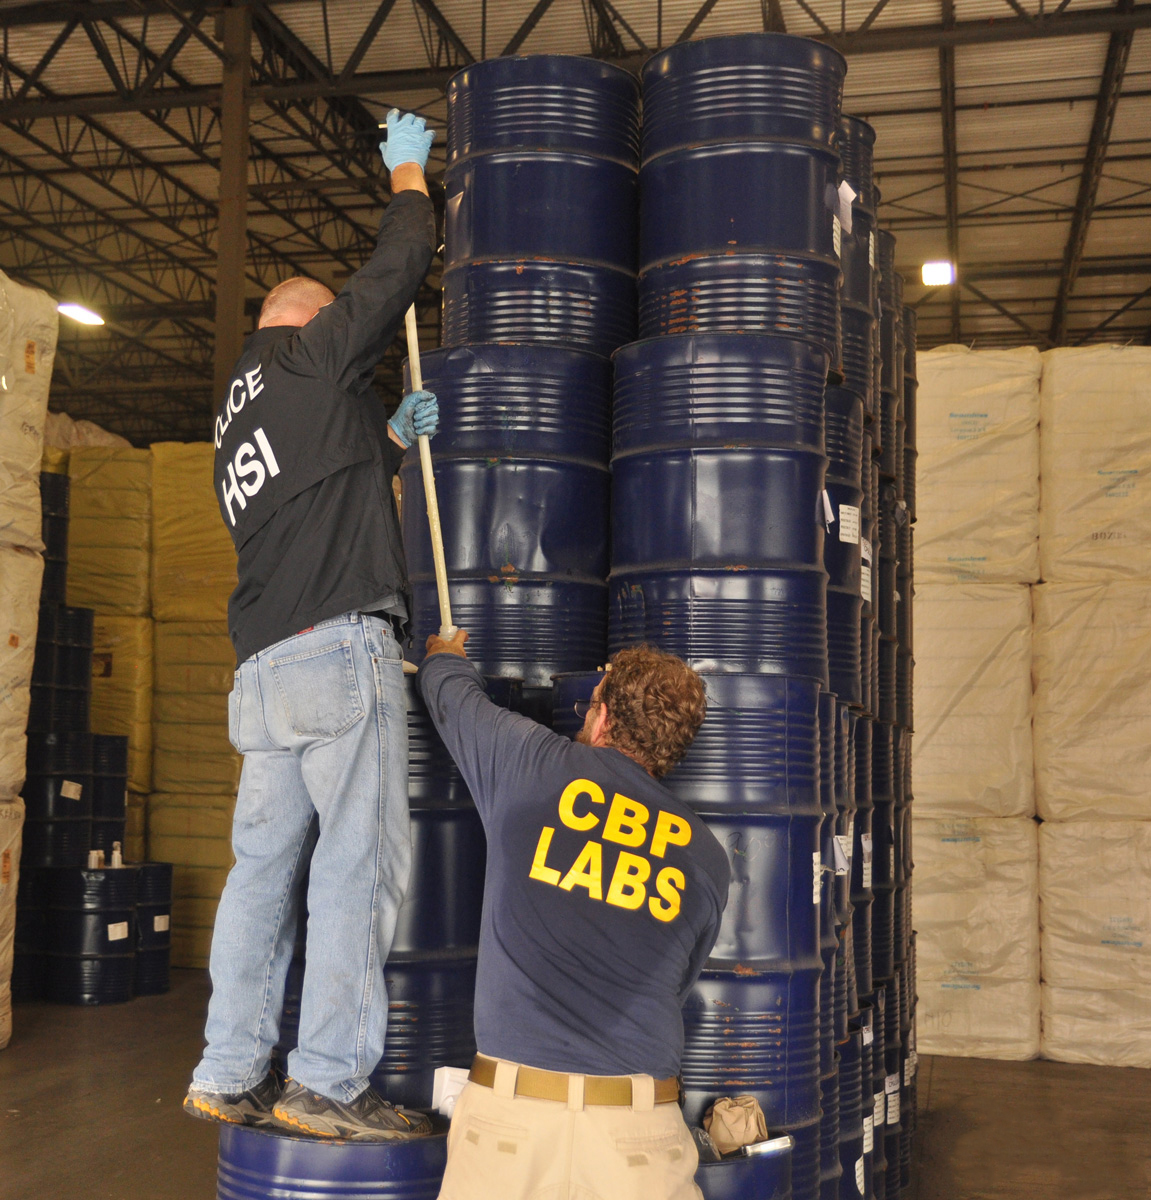 660 barrels of Chinese honey confiscated by U.S. Immigration and Customs Enforcement agents in Houston that were labeled as originating from Latvia. (Credit: U.S. Immigration and Customs Enforcement)